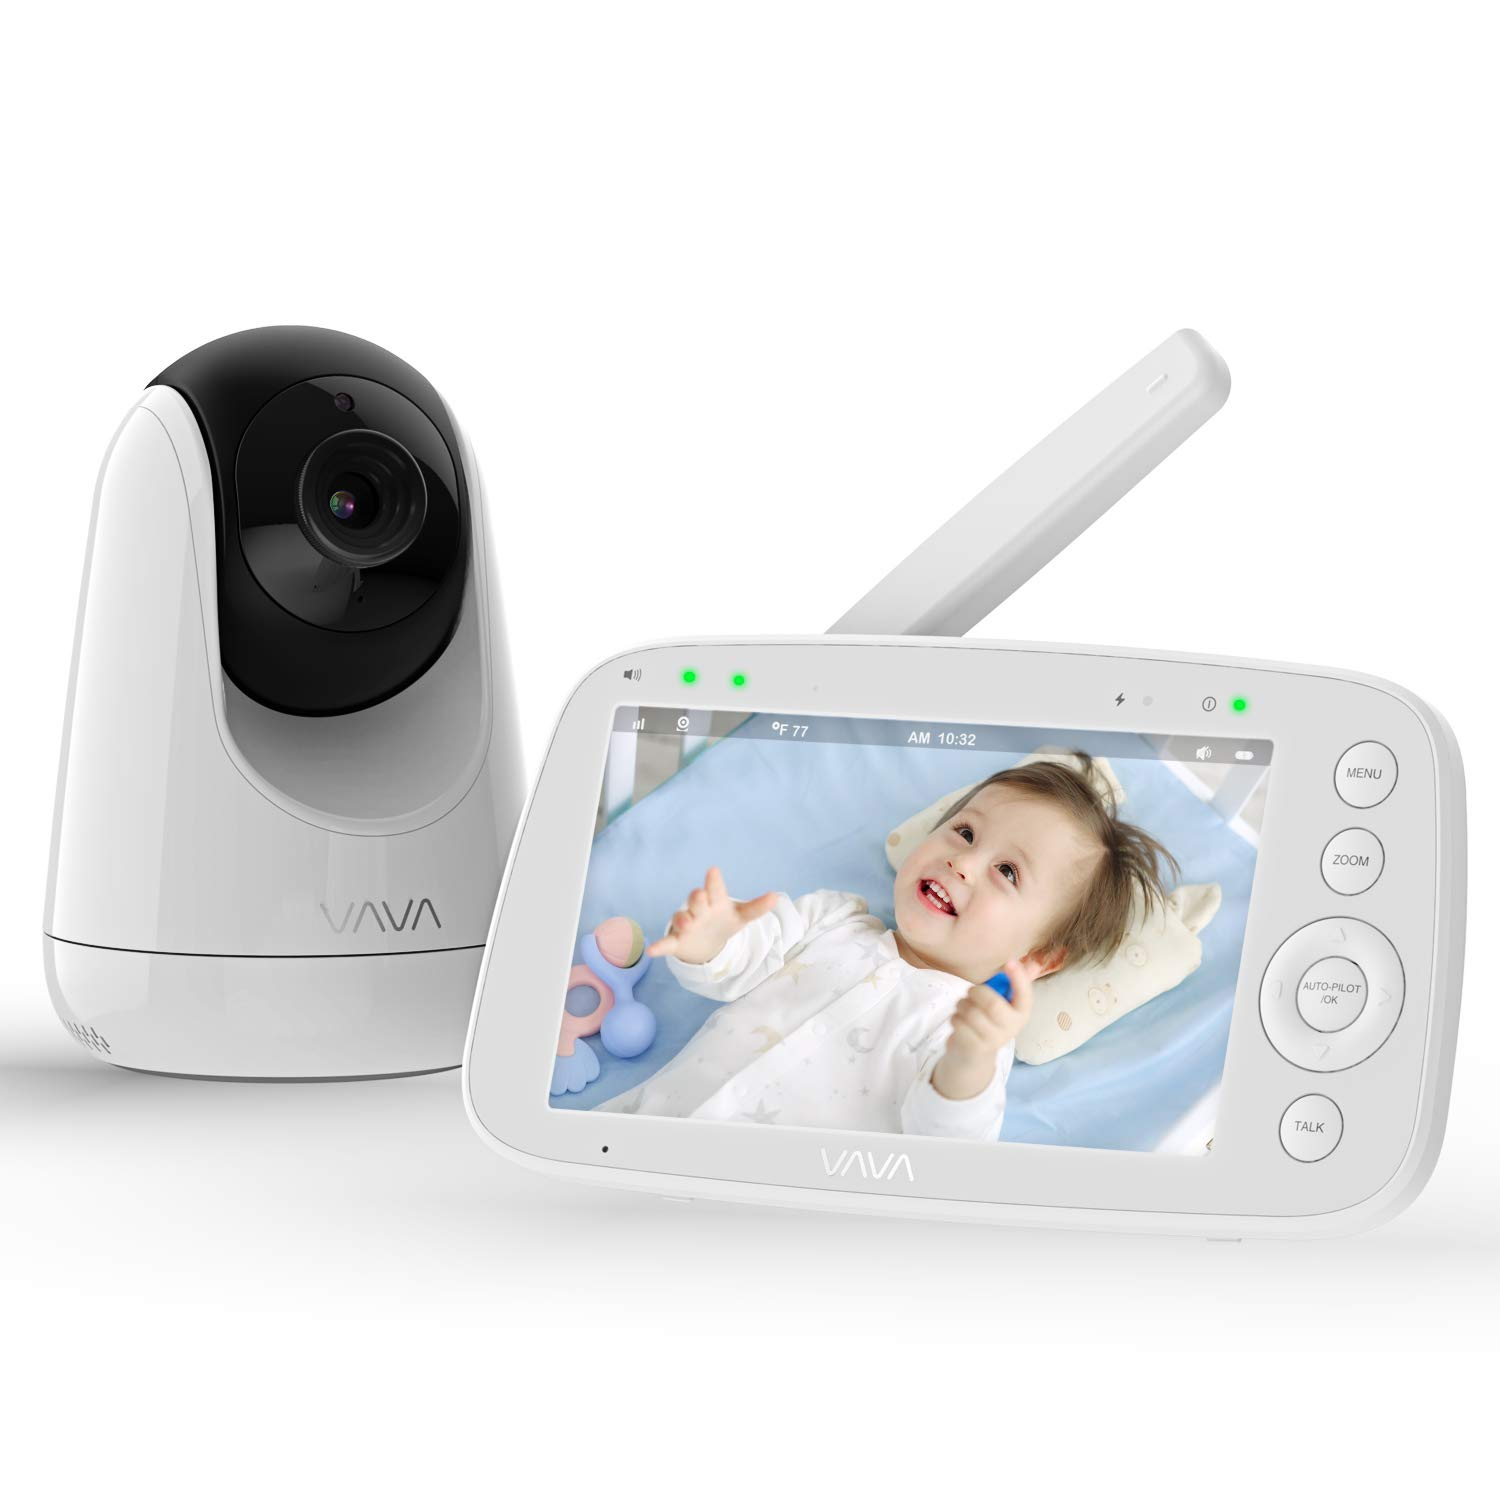 Baby Monitor, VAVA 720P 5'' HD Display Video Baby Monitor with Camera and Audio, IPS Screen, 480ft Range, 4500 mAh Battery, Two-Way Audio, One-Click Zoom, Night Vision and Thermal Monitor V1.1 Version by VAVA